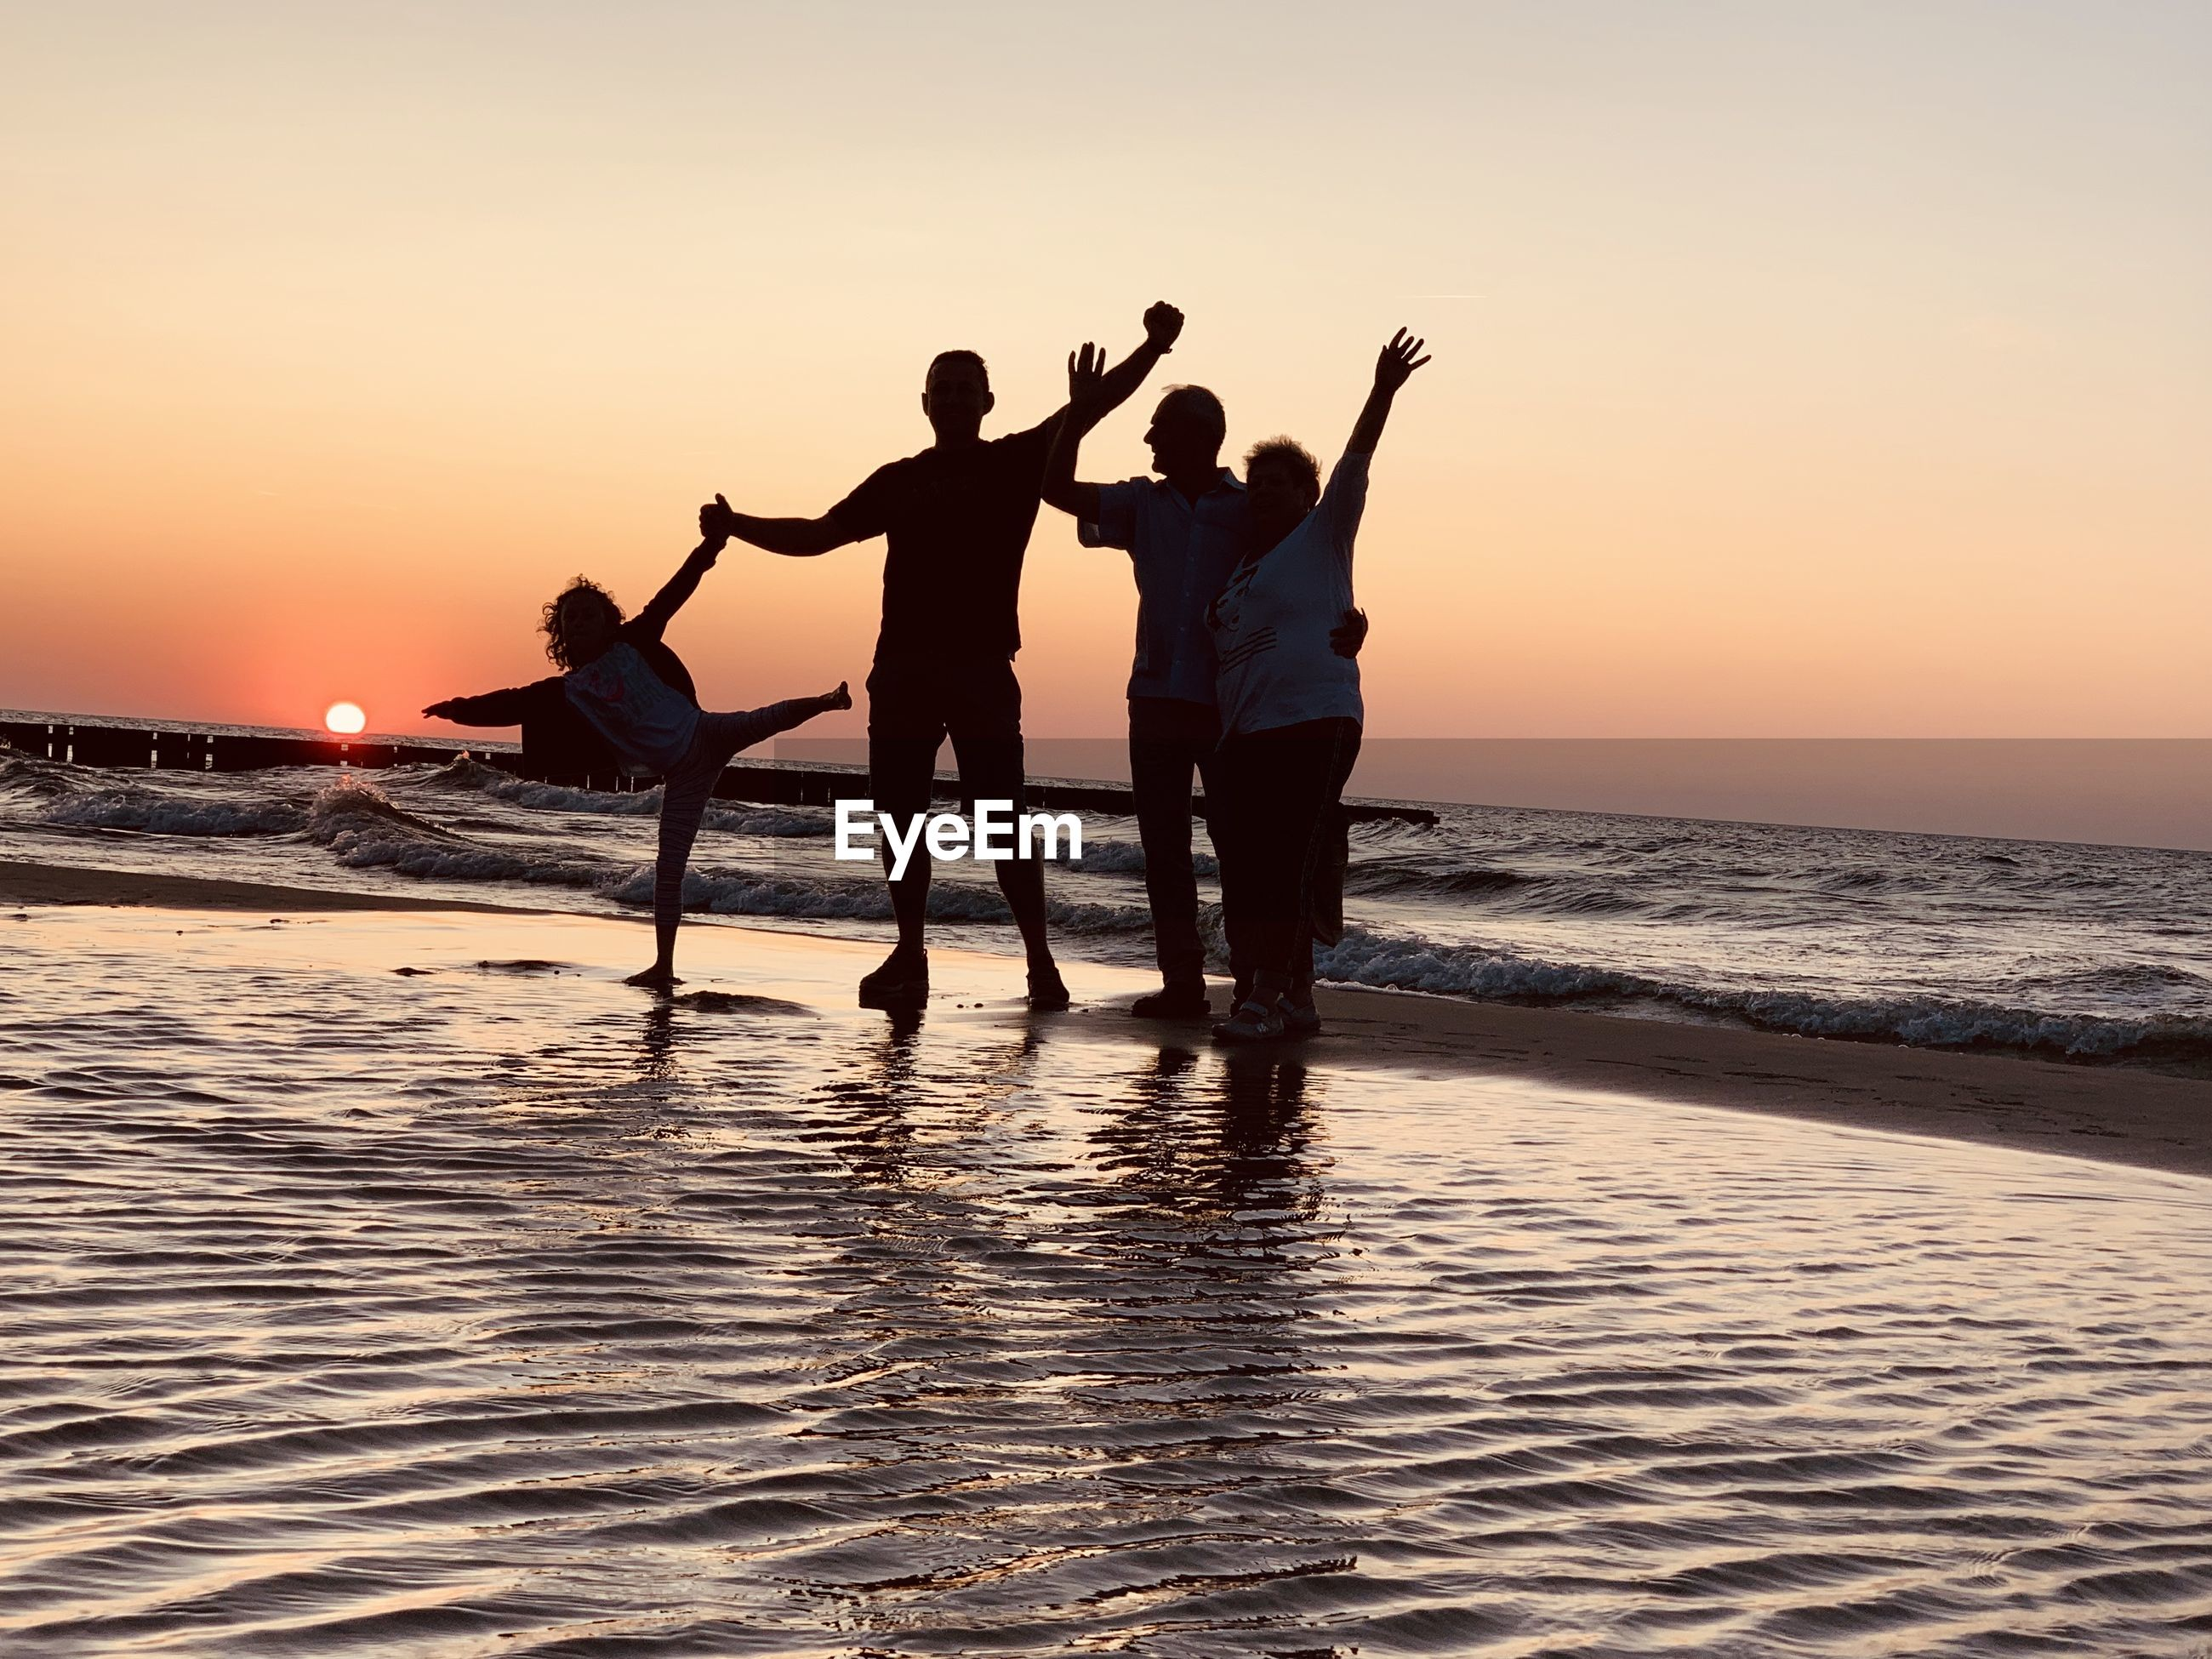 Cheerful people standing at beach during sunset